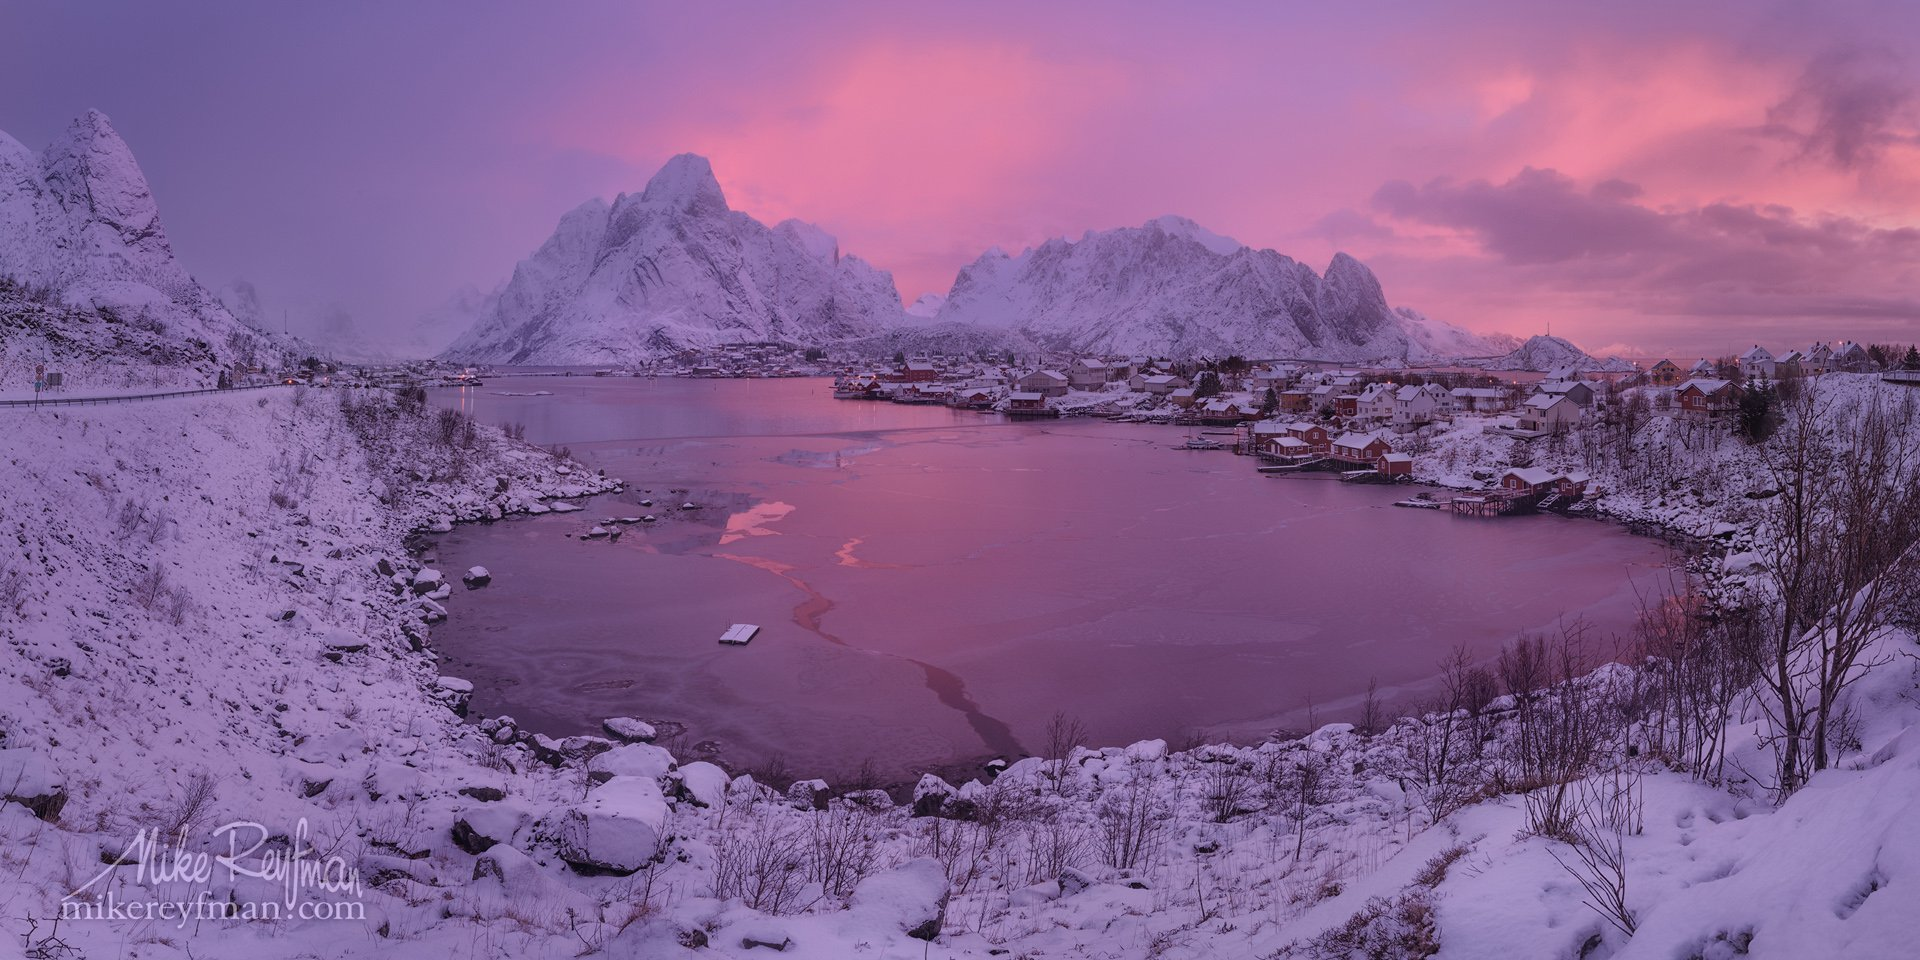 snowcapped mountain, lofoten, cloud - sky, cold temperature, color image, contrasts, frozen, horizontal, mountain, mountain range, nature, norway,  photography, scenics, sky, snow, tranquility, winter, town , fishing, cod, reine, Майк Рейфман